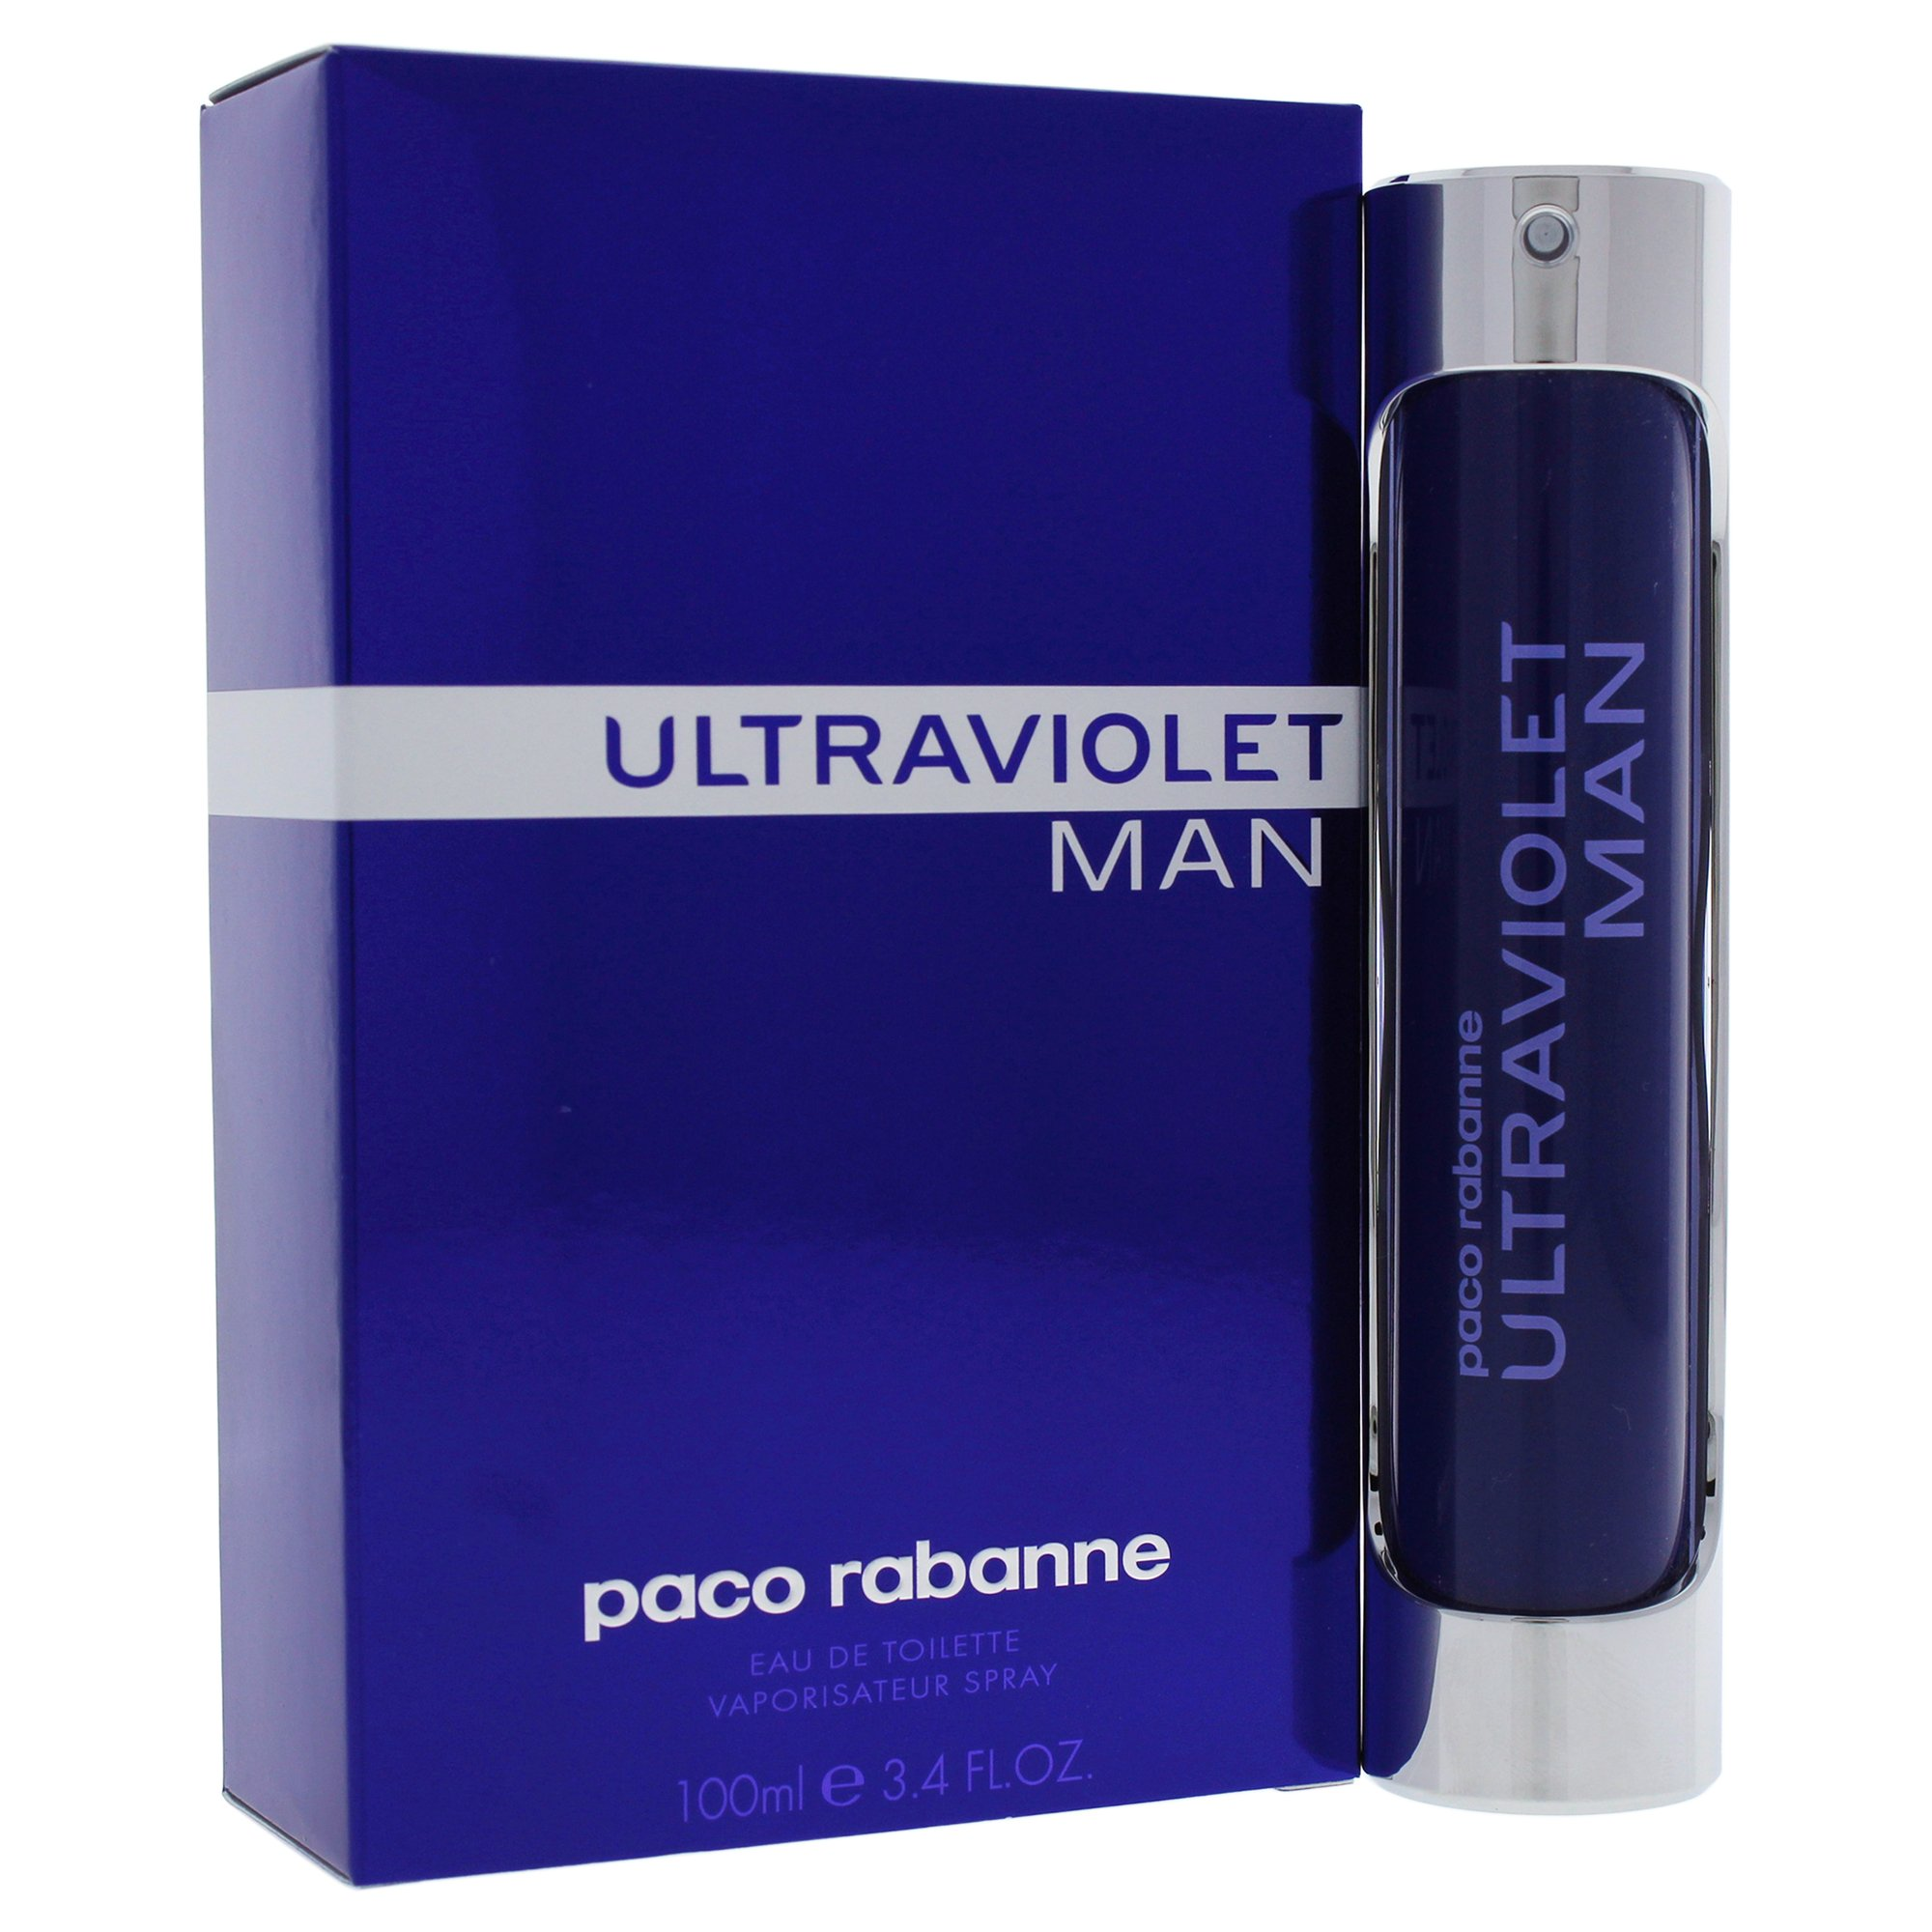 Perfume Ultraviolet: description of the fragrance, reviews. Perfumery Paco Rabanne Ultraviolet water 94